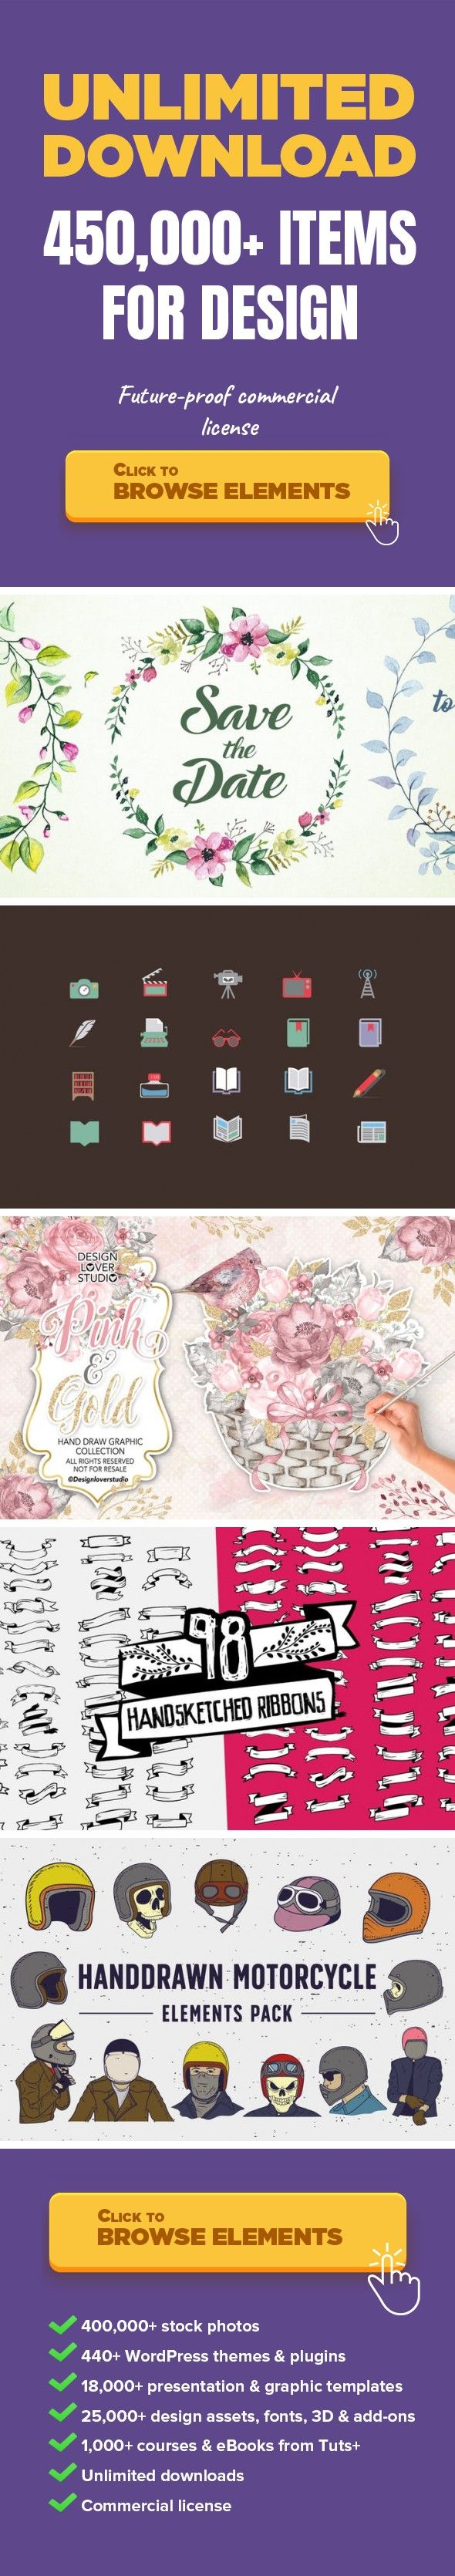 Wedding Badges Graphics, Objects, Illustrations wedding, flower, flowers, date, savethedate, love, invitation, badge, badges, watercolor   Wedding Badges designed by Jumsoft.The package includes PSD and JPG versions.